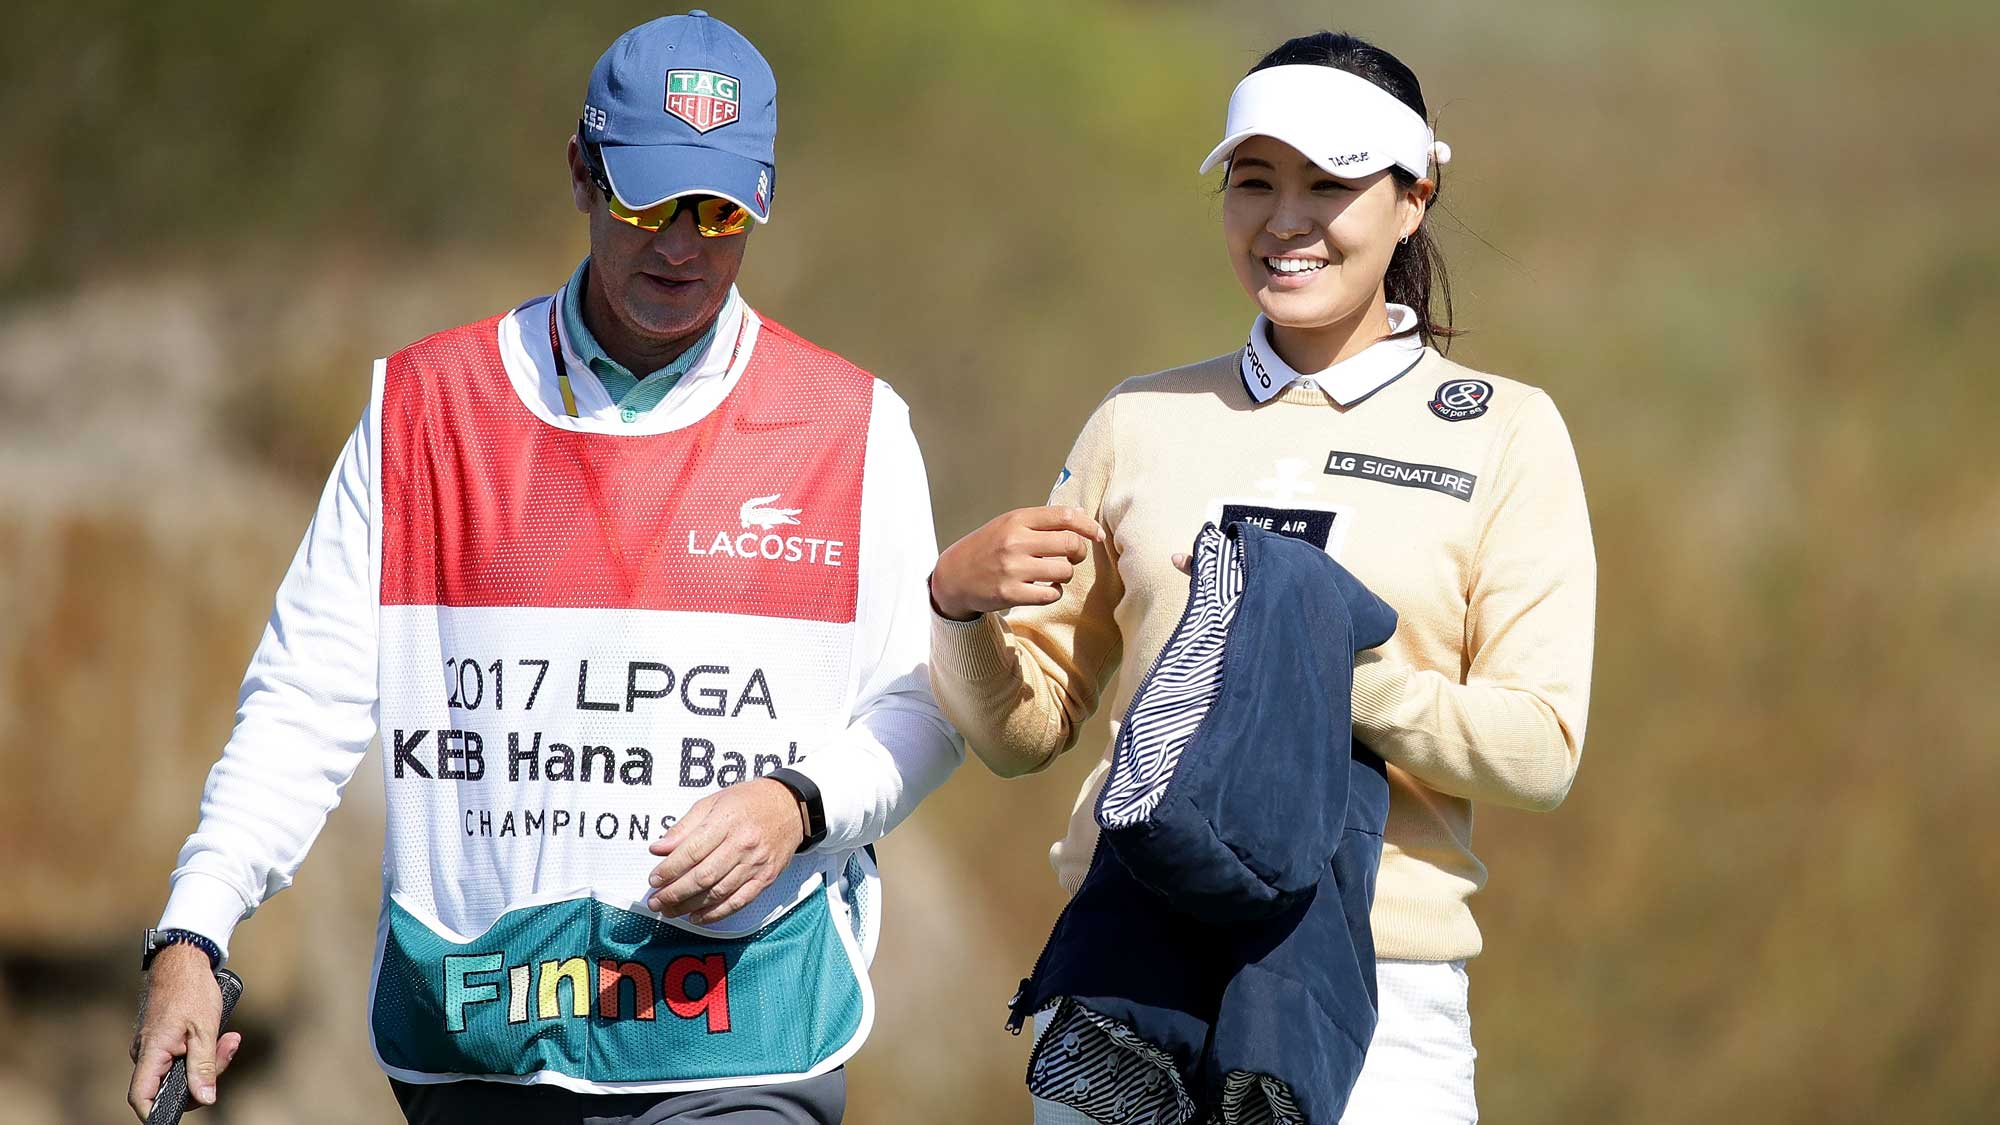 In-Gee Chun of South Korea on 6th hole during the final round of the LPGA KEB Hana Bank Championship